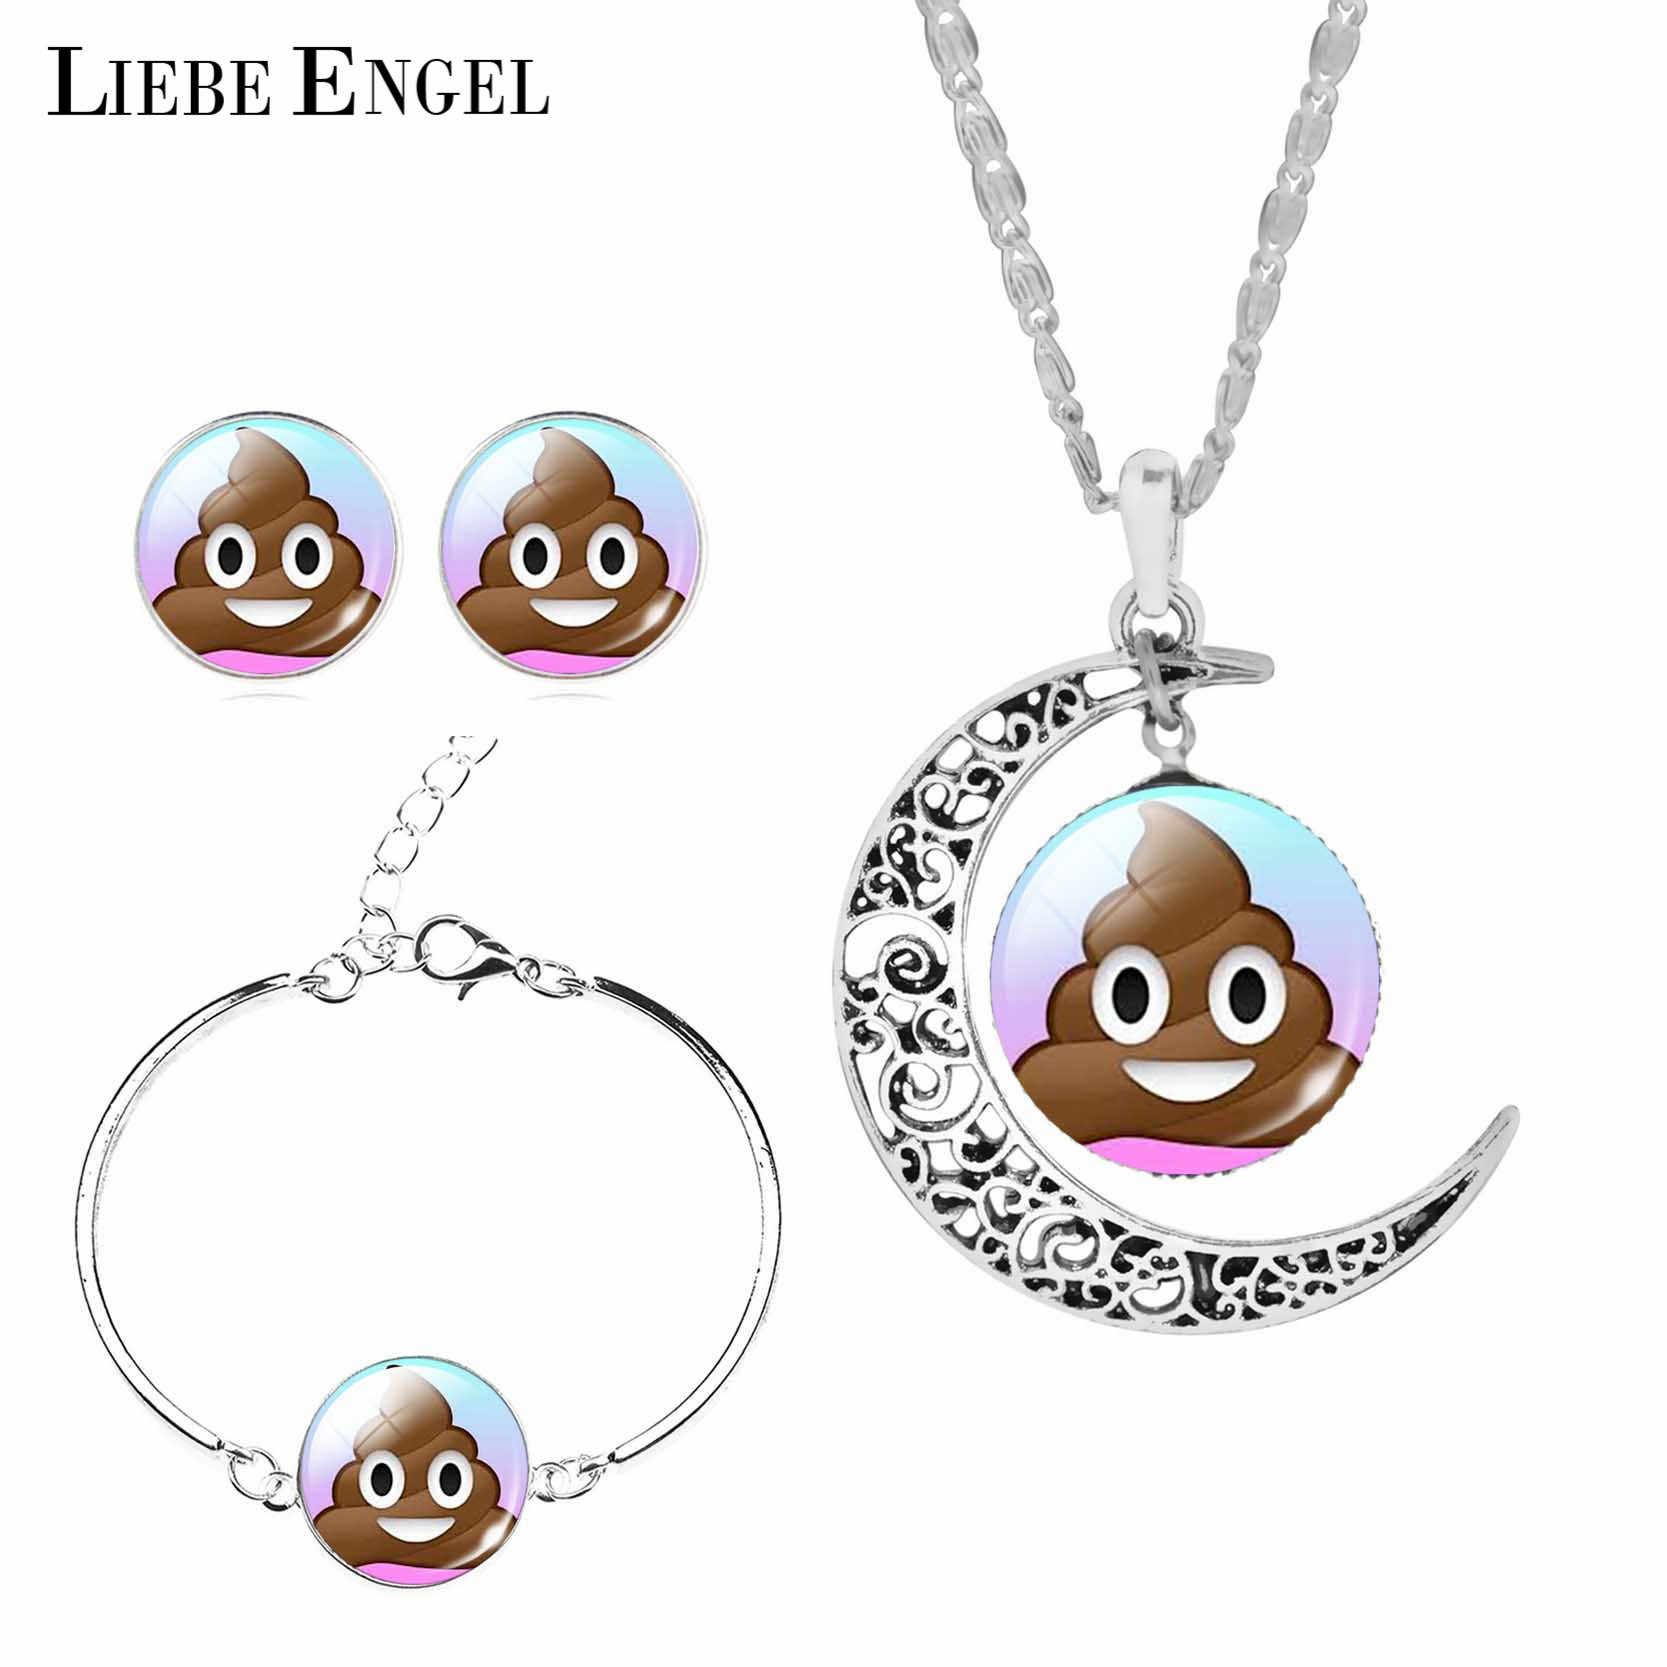 LIEBE ENGEL New Arrival Poop Emoji Jewelry Sets Earrings Bracelet Moon Statement Necklace Sets Vintage Silver Color For Women